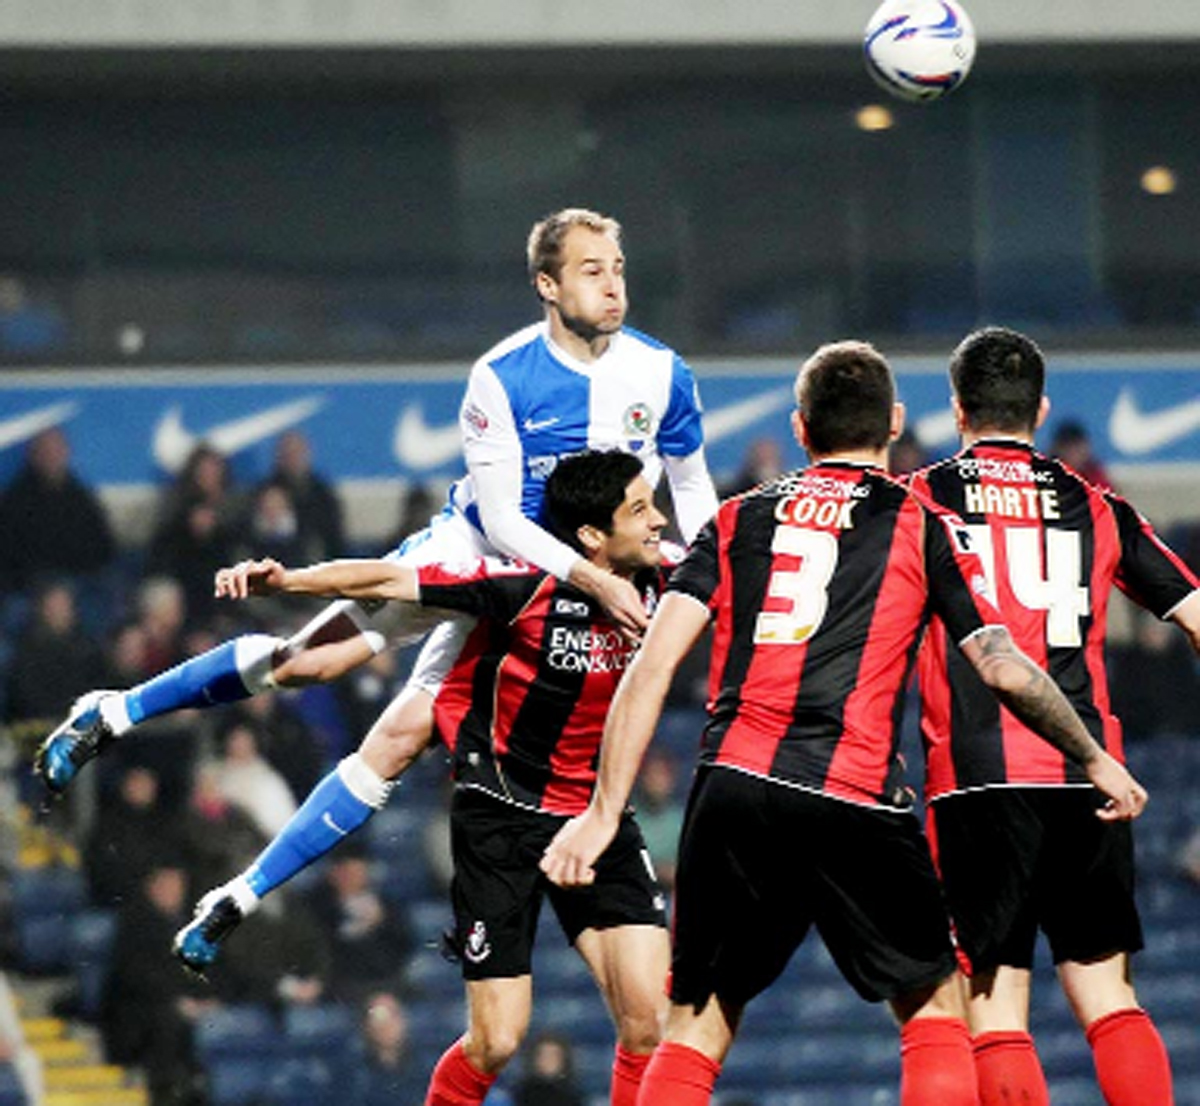 PLAYER RATINGS: Blackburn Rovers v Bournemouth